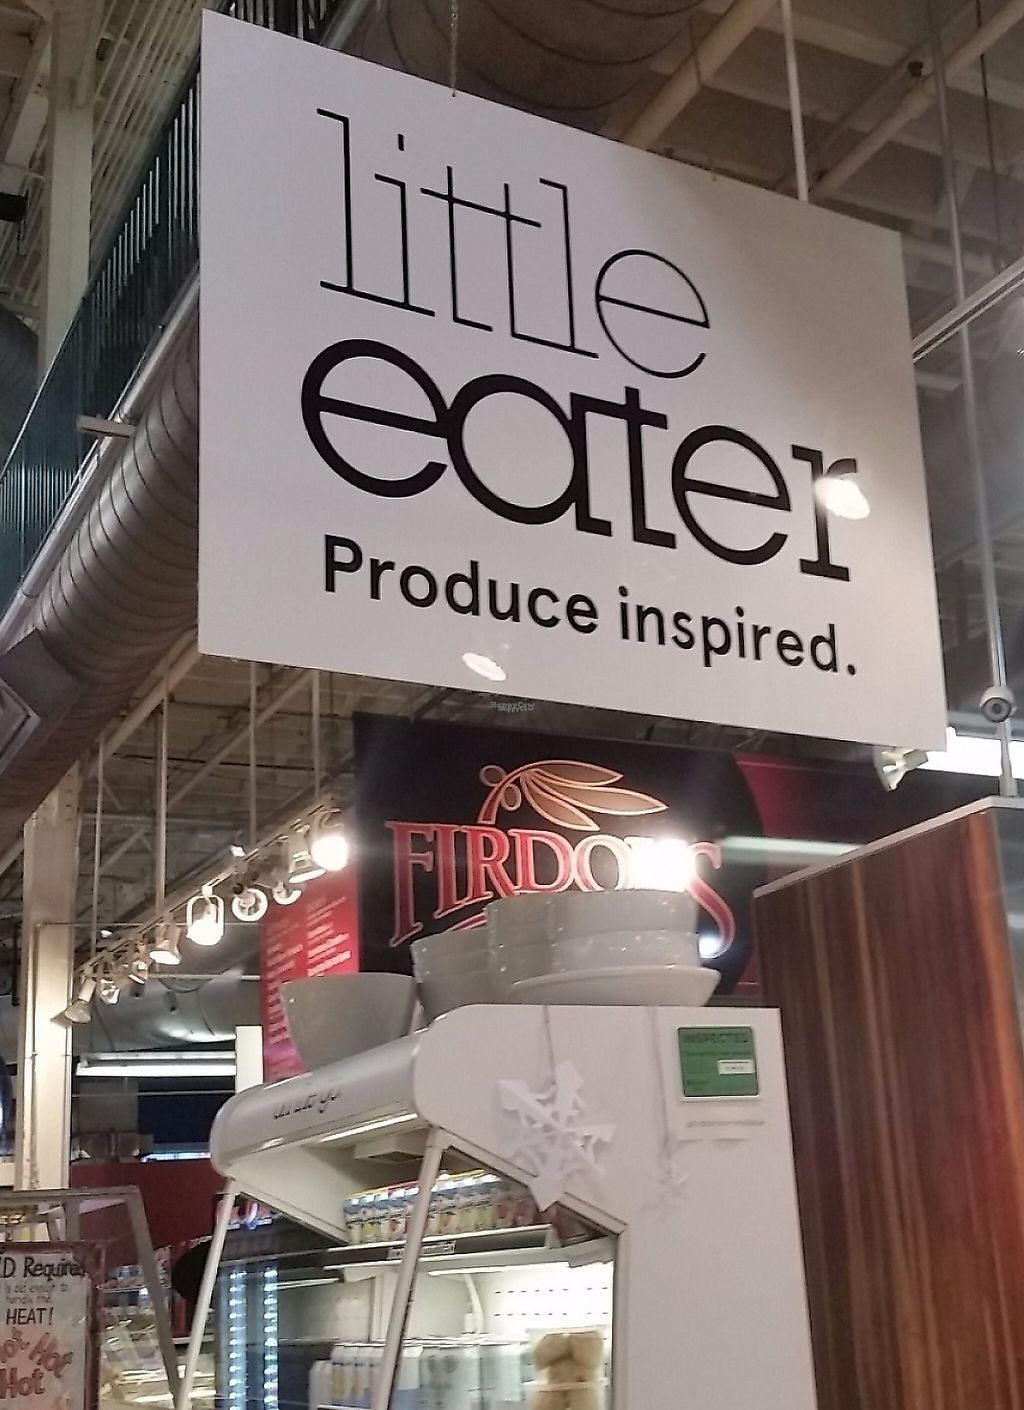 """Photo of Little Eater  by <a href=""""/members/profile/CorissaMarie"""">CorissaMarie</a> <br/>Located in the North Market <br/> December 4, 2016  - <a href='/contact/abuse/image/83568/216787'>Report</a>"""